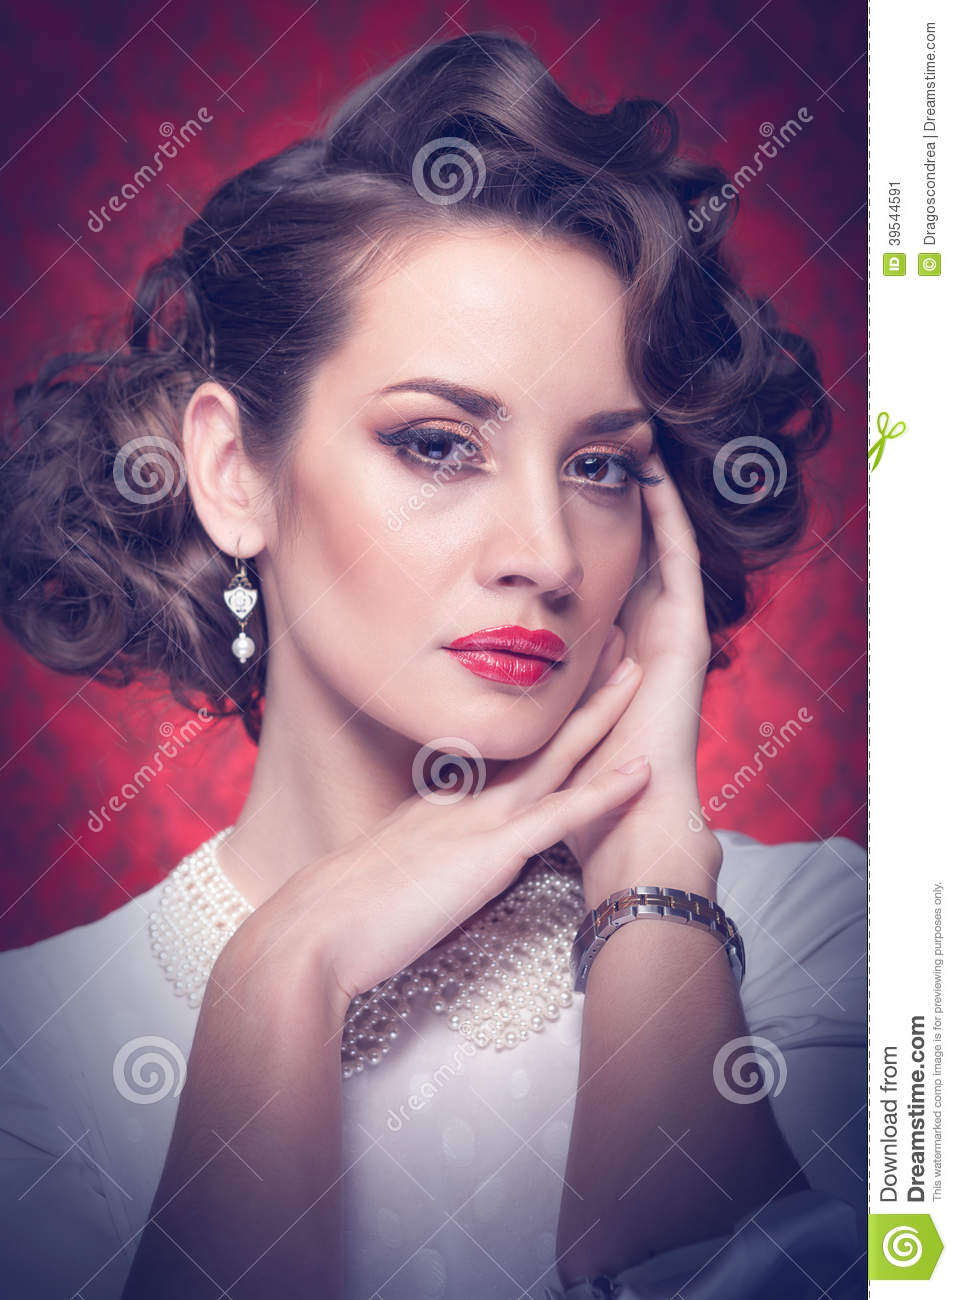 Old Fashioned Woman Toned Image Stock Image Image Of Curly Hair